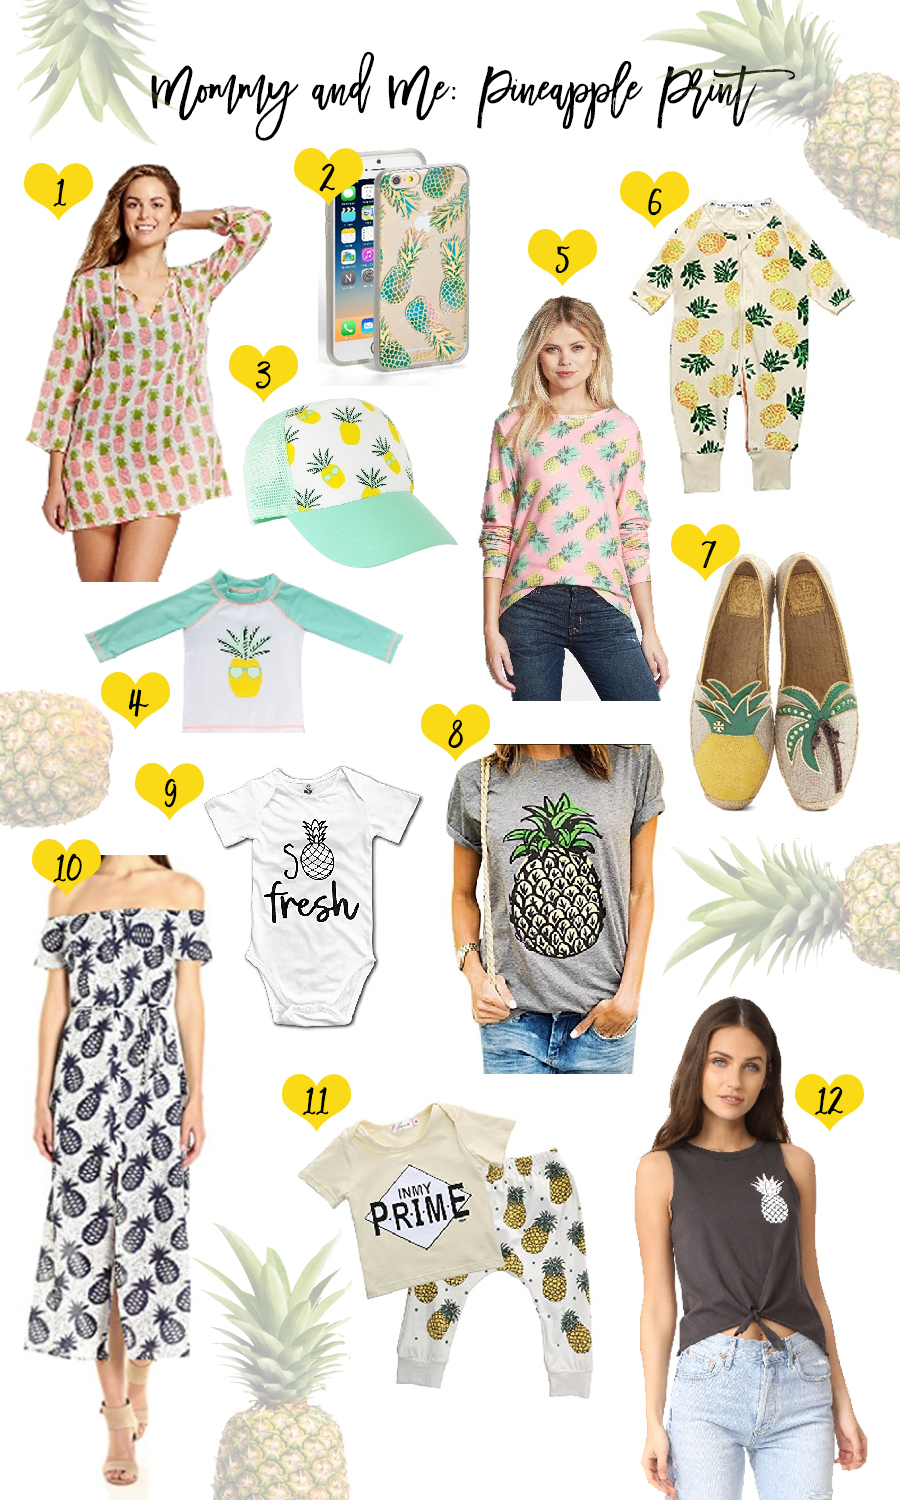 Mommy and Me Pineapple Print-Outfit Inspiration-Mama and Baby Boy Matching Outfits-How to Coordinate Outfits with your Baby Boy-Have Need Want